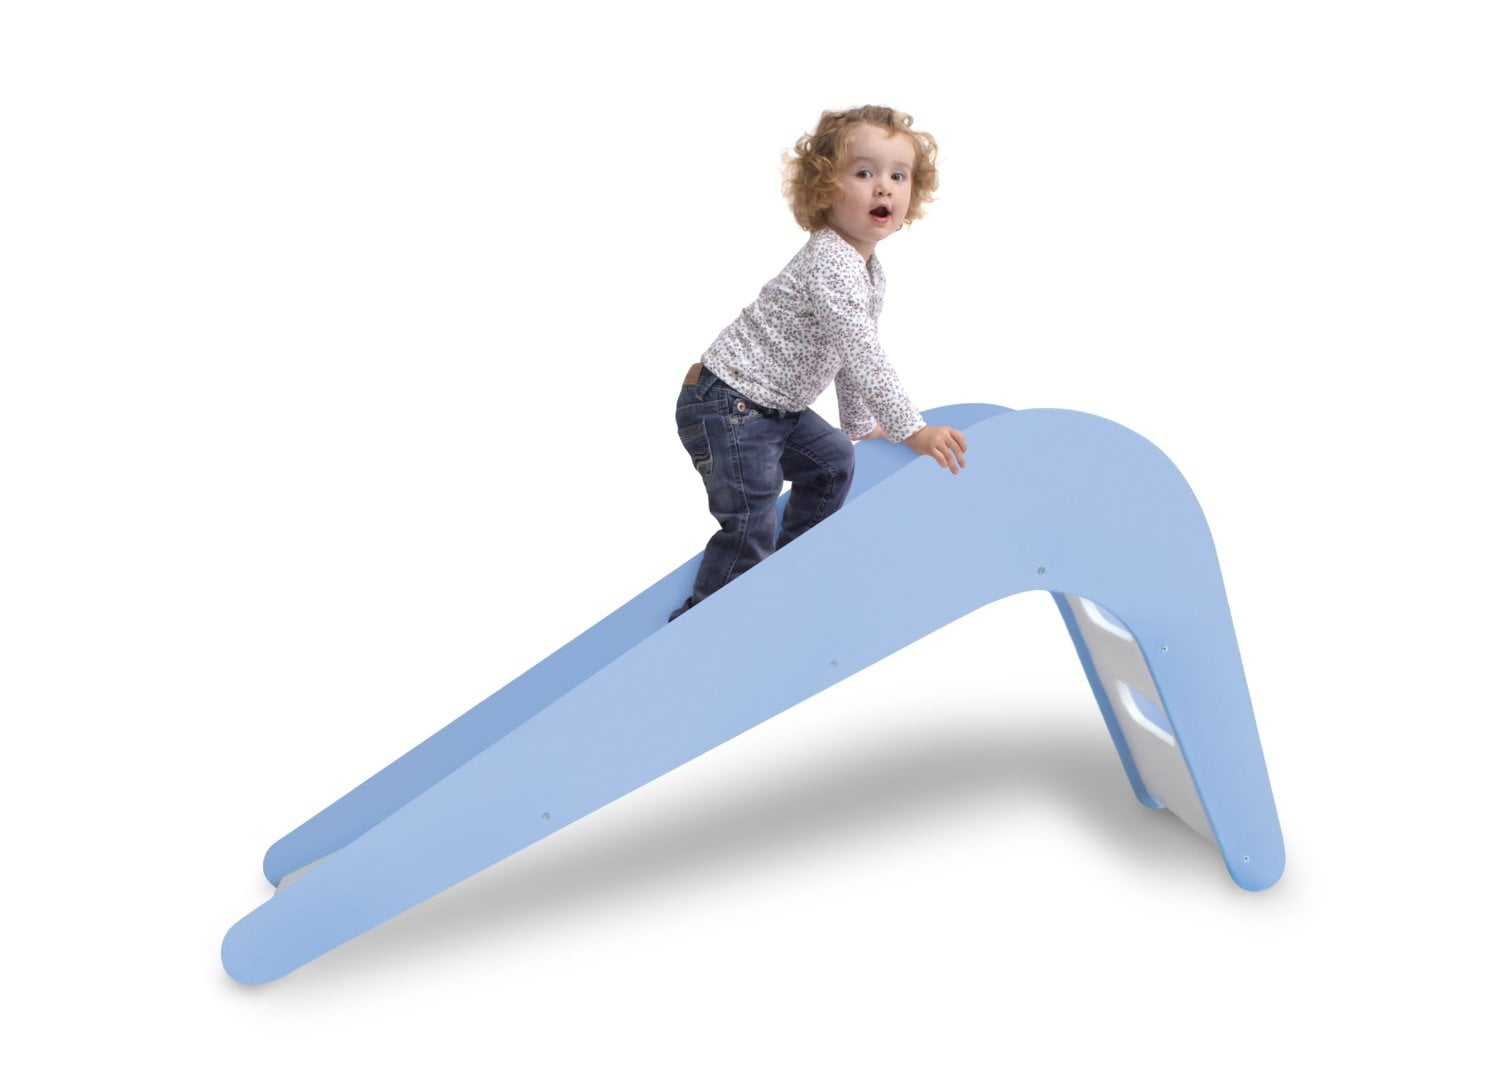 Jupiduu Blue Whale Slide (He's Really Getting This One!)